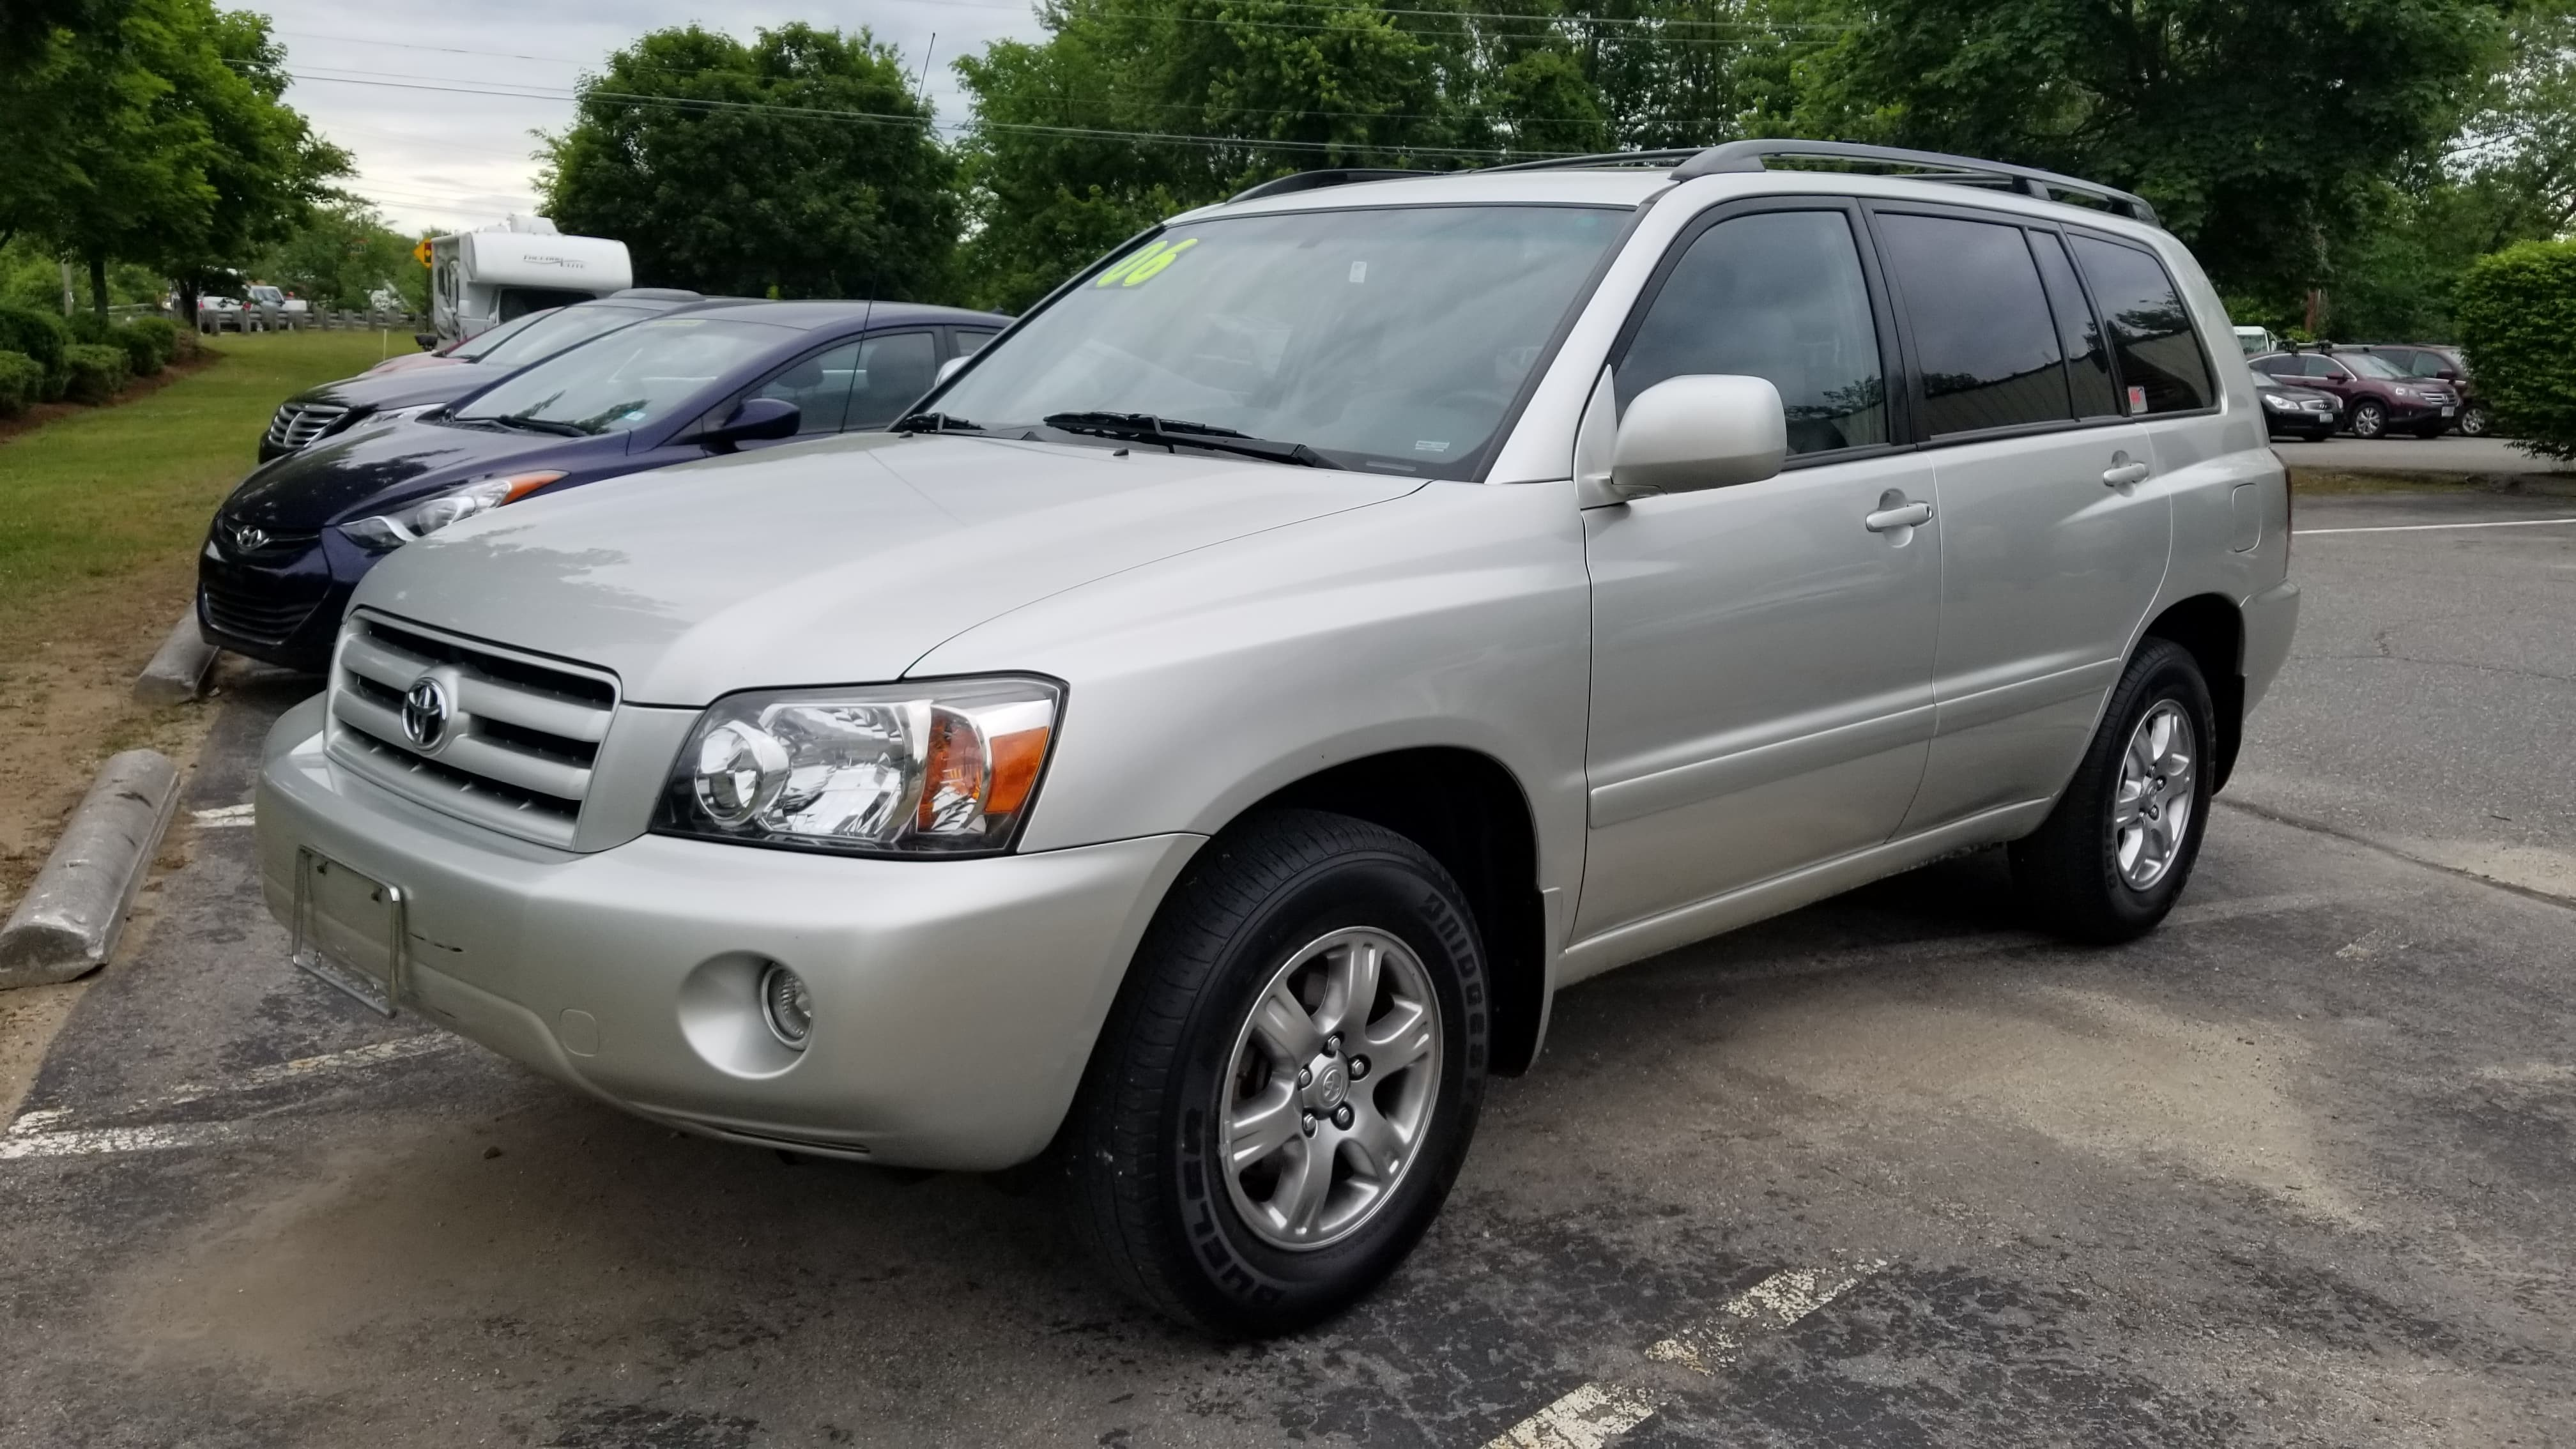 2006 Toyota Highlander AWD w/ Sunroof and 3rd Row Seating!